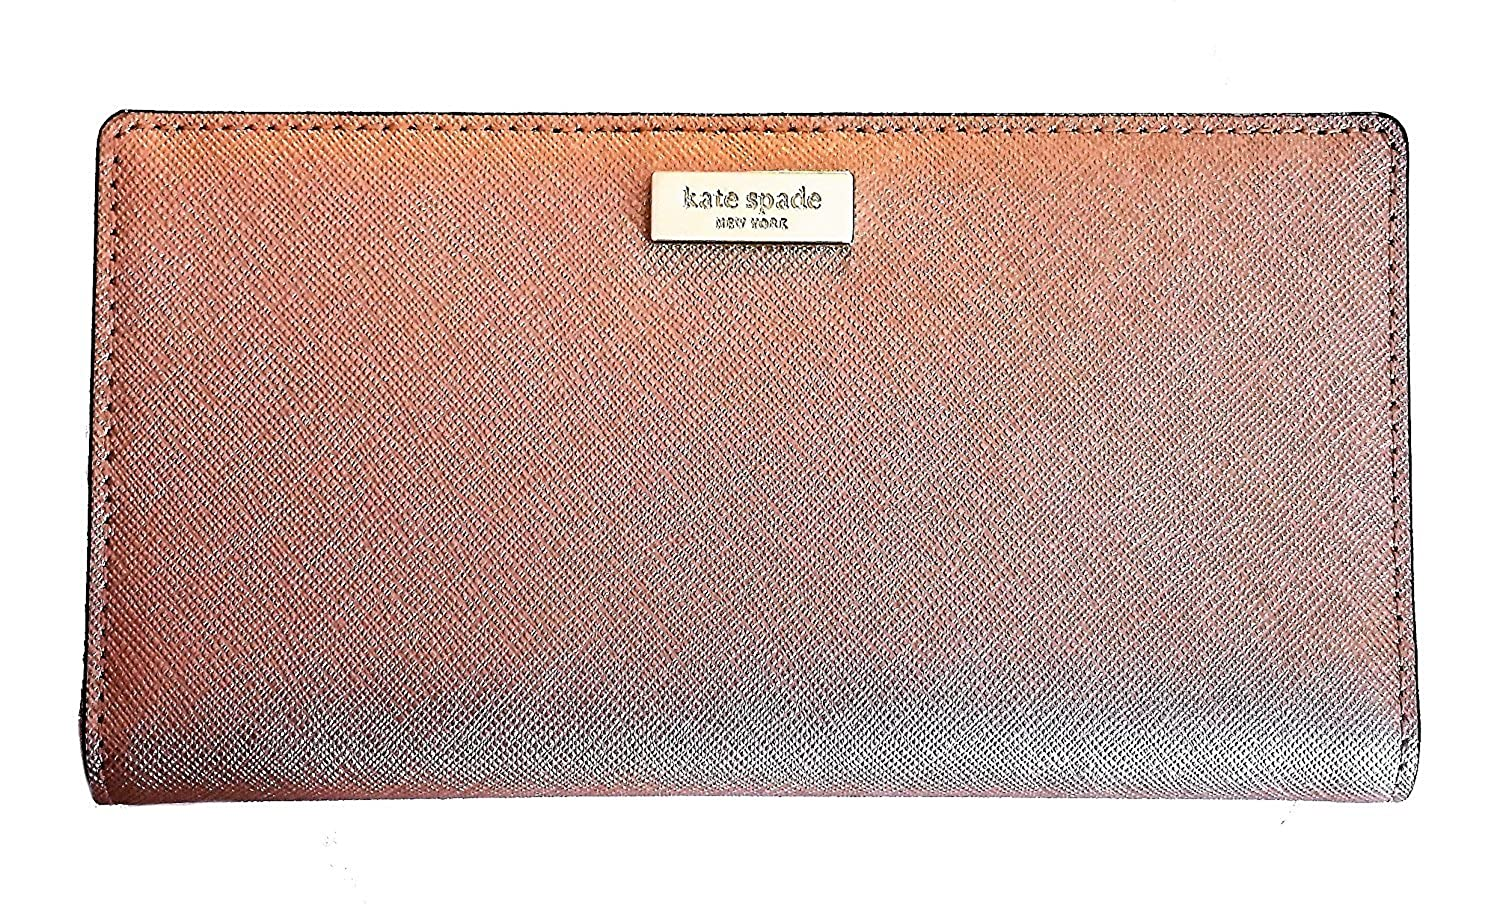 Kate Spade New York Laurel Way Stacy Saffiano Leather Wallet Rosegold 00_ZFWDOBKS_02